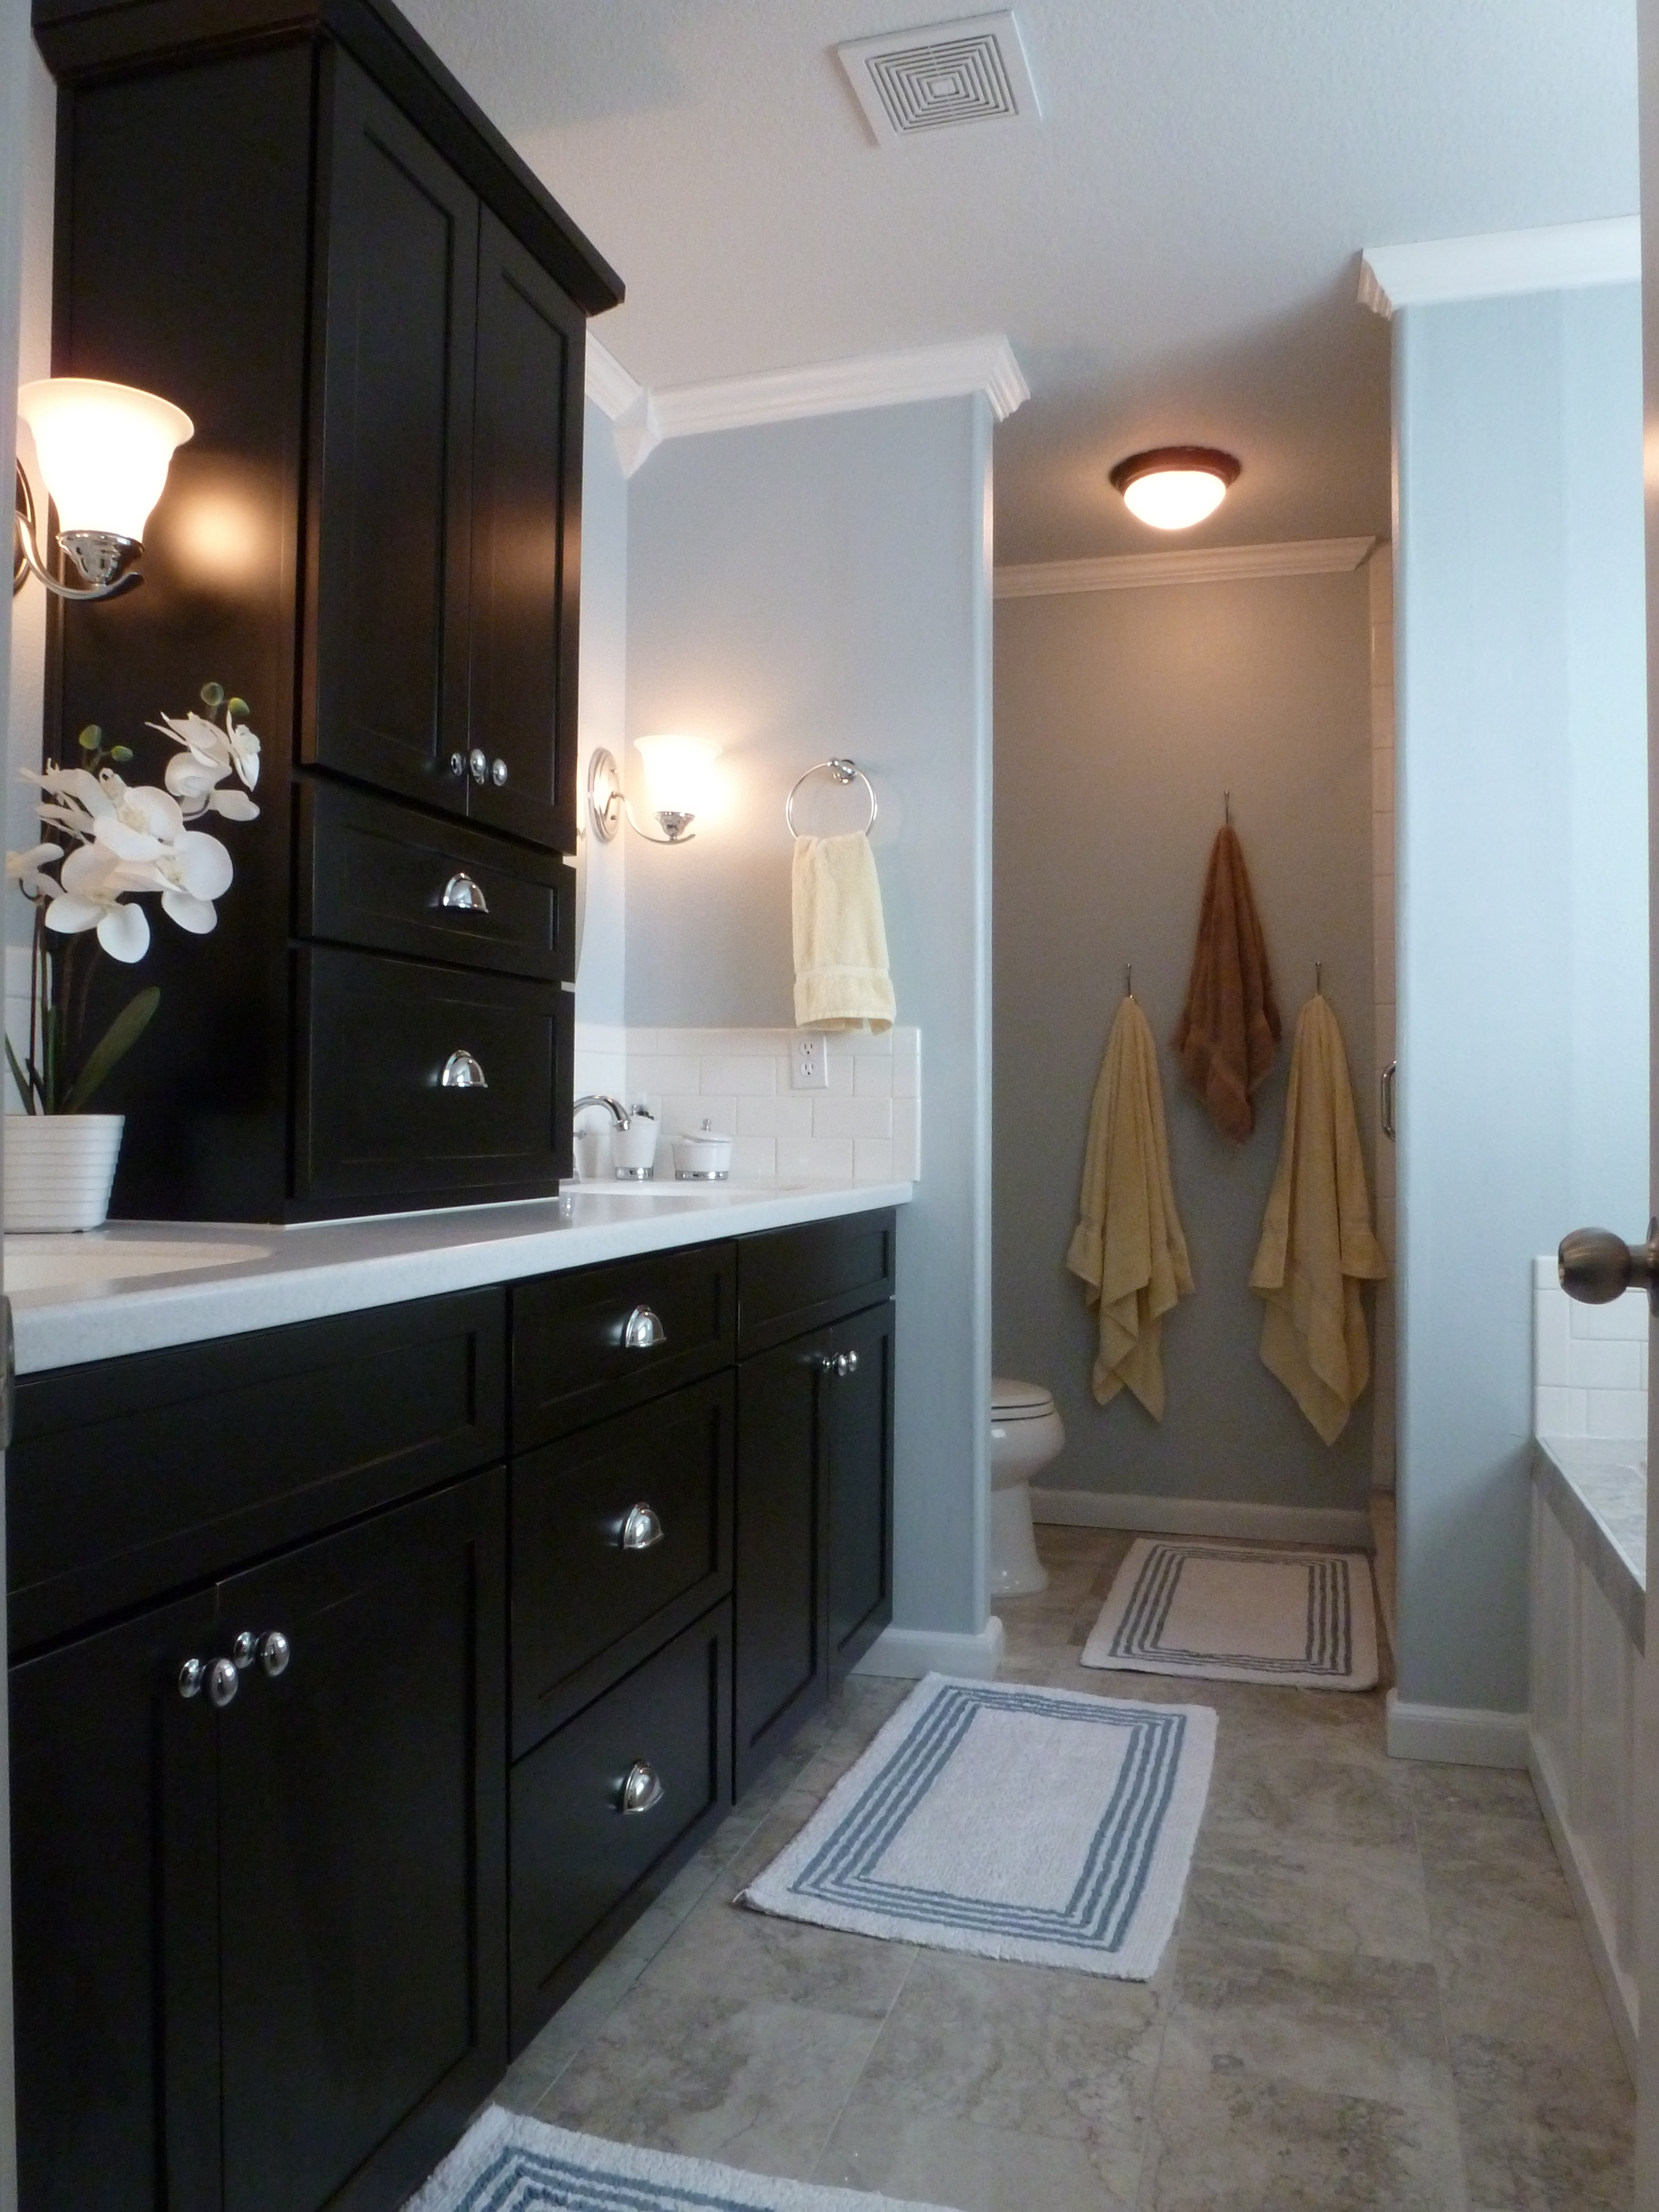 Before  After Bliss Our Monster Master Bathroom Renovation  Teller All About It